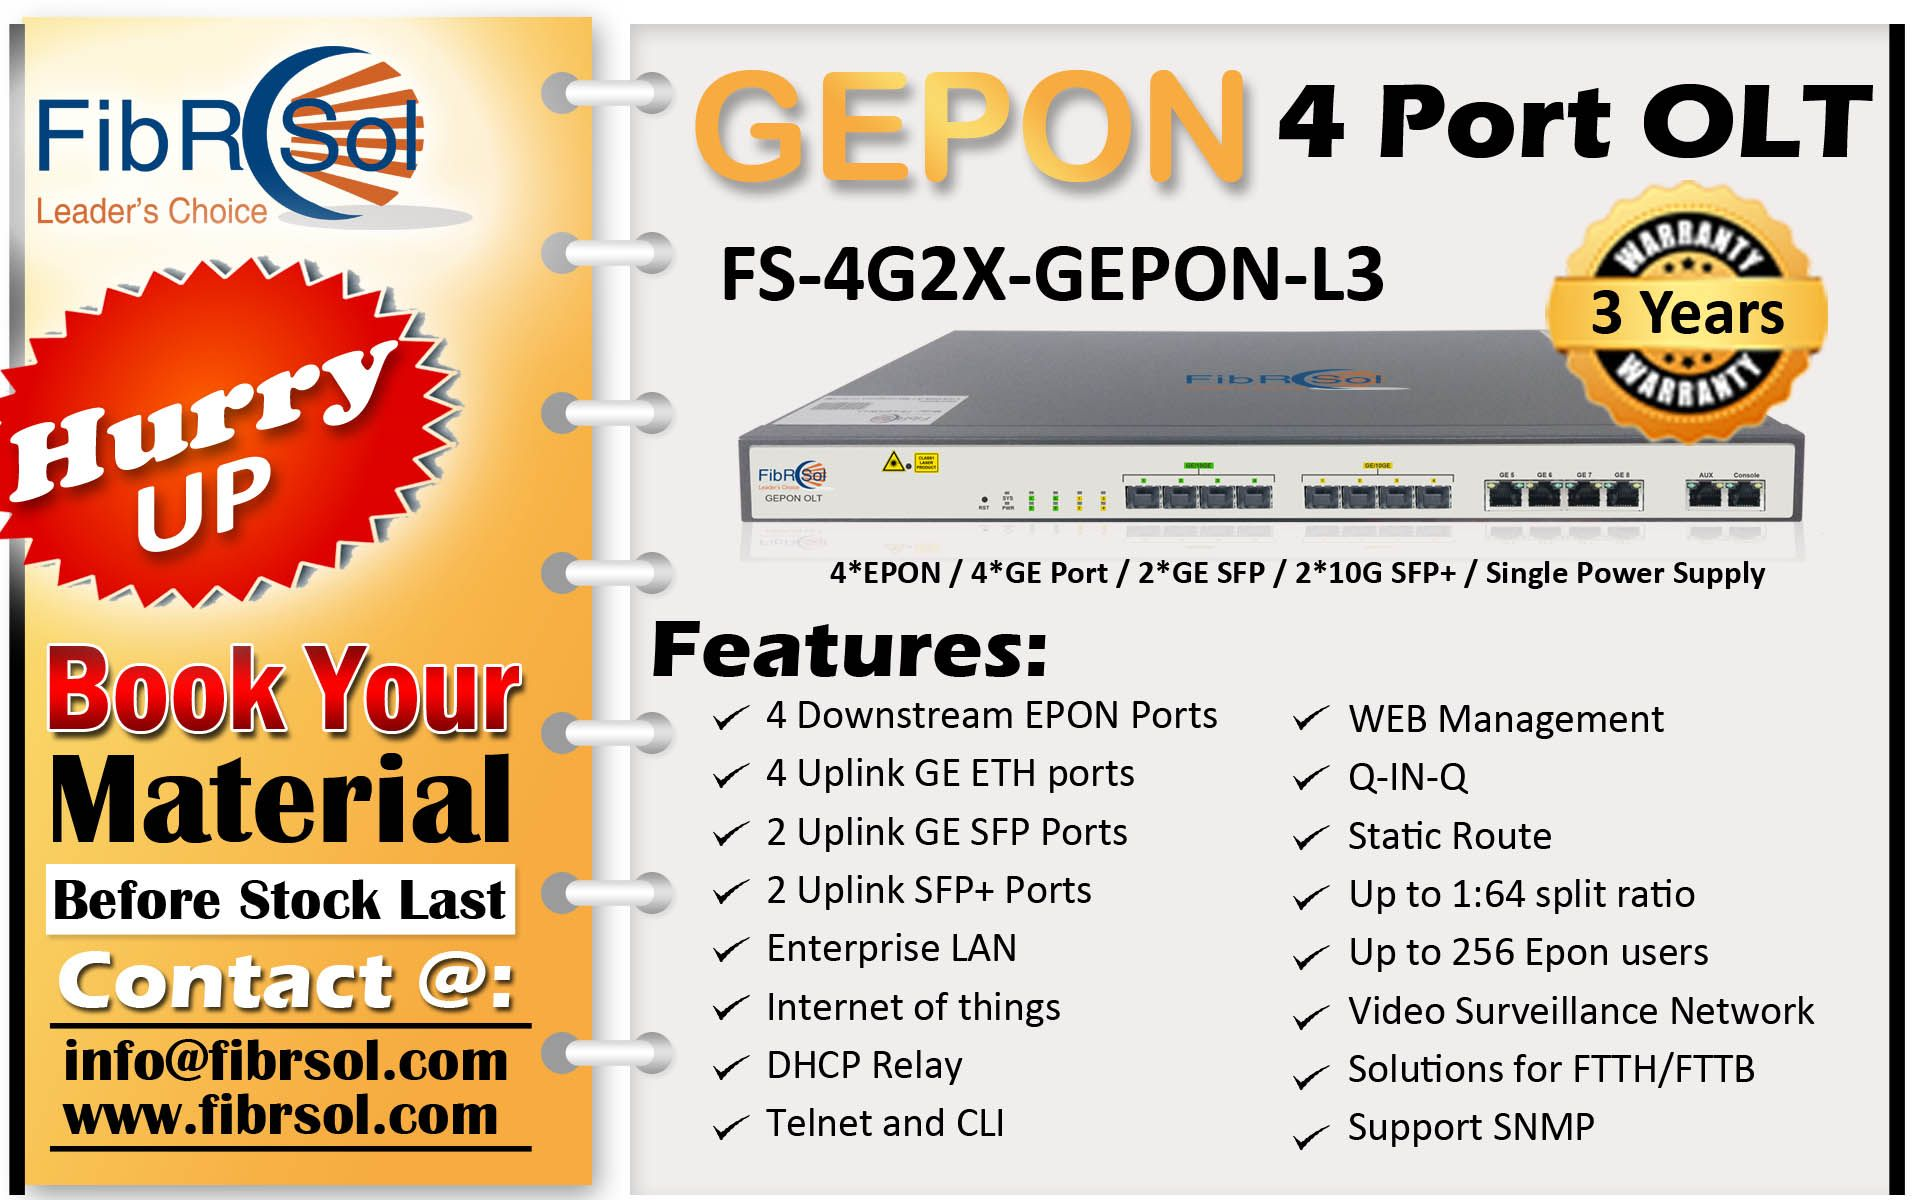 Fibrsol S Gepon 4 Port Olt In 2020 Fiber Patch Cord Port Power Supply